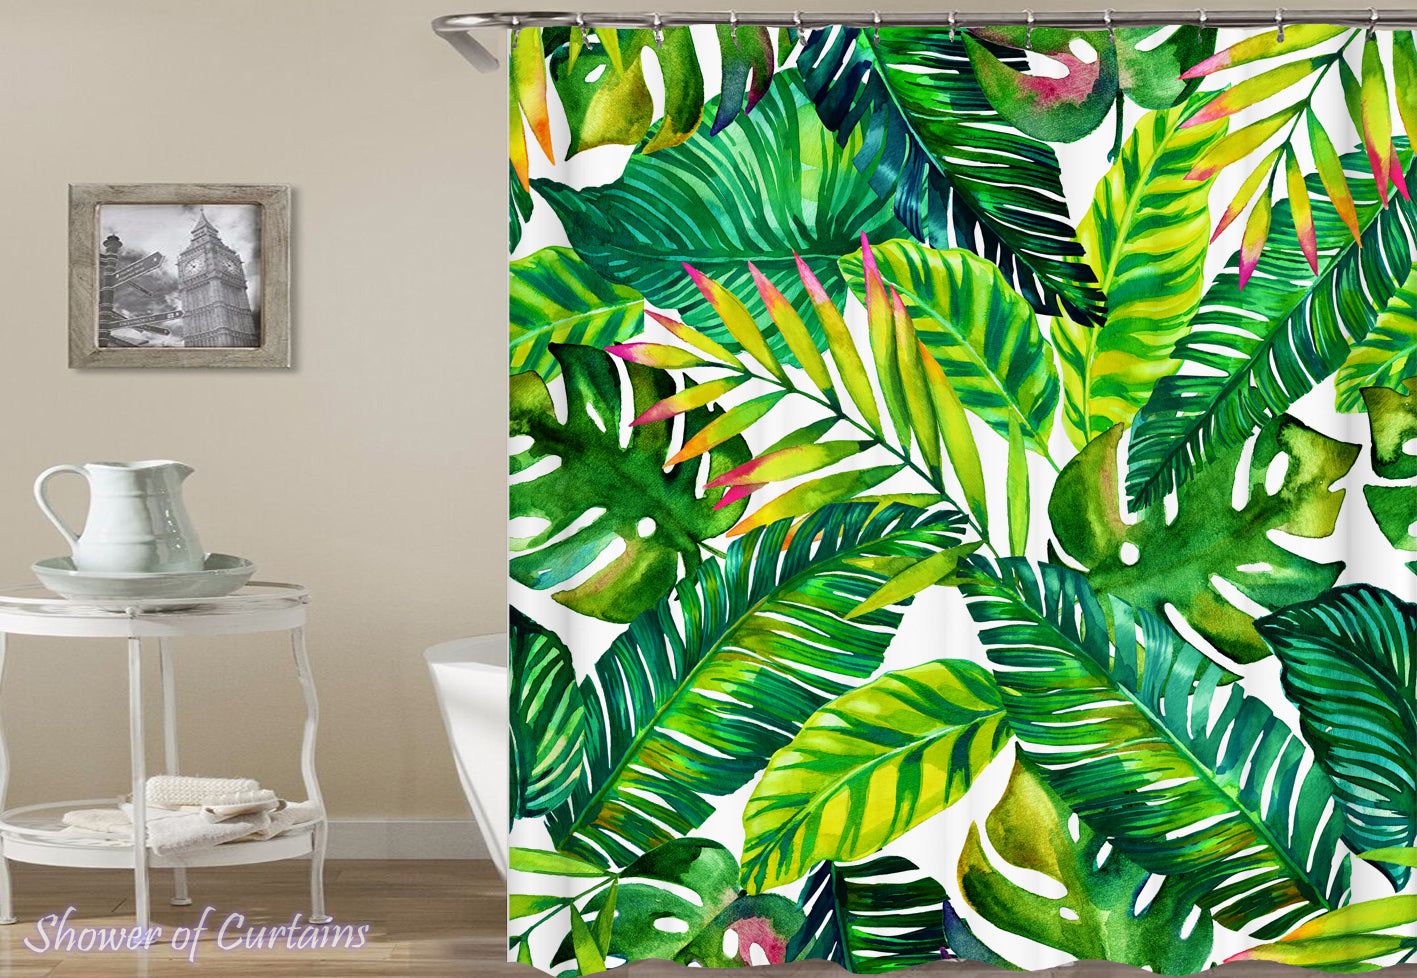 Shower Curtains | Tropical leaves – Shower of Curtains